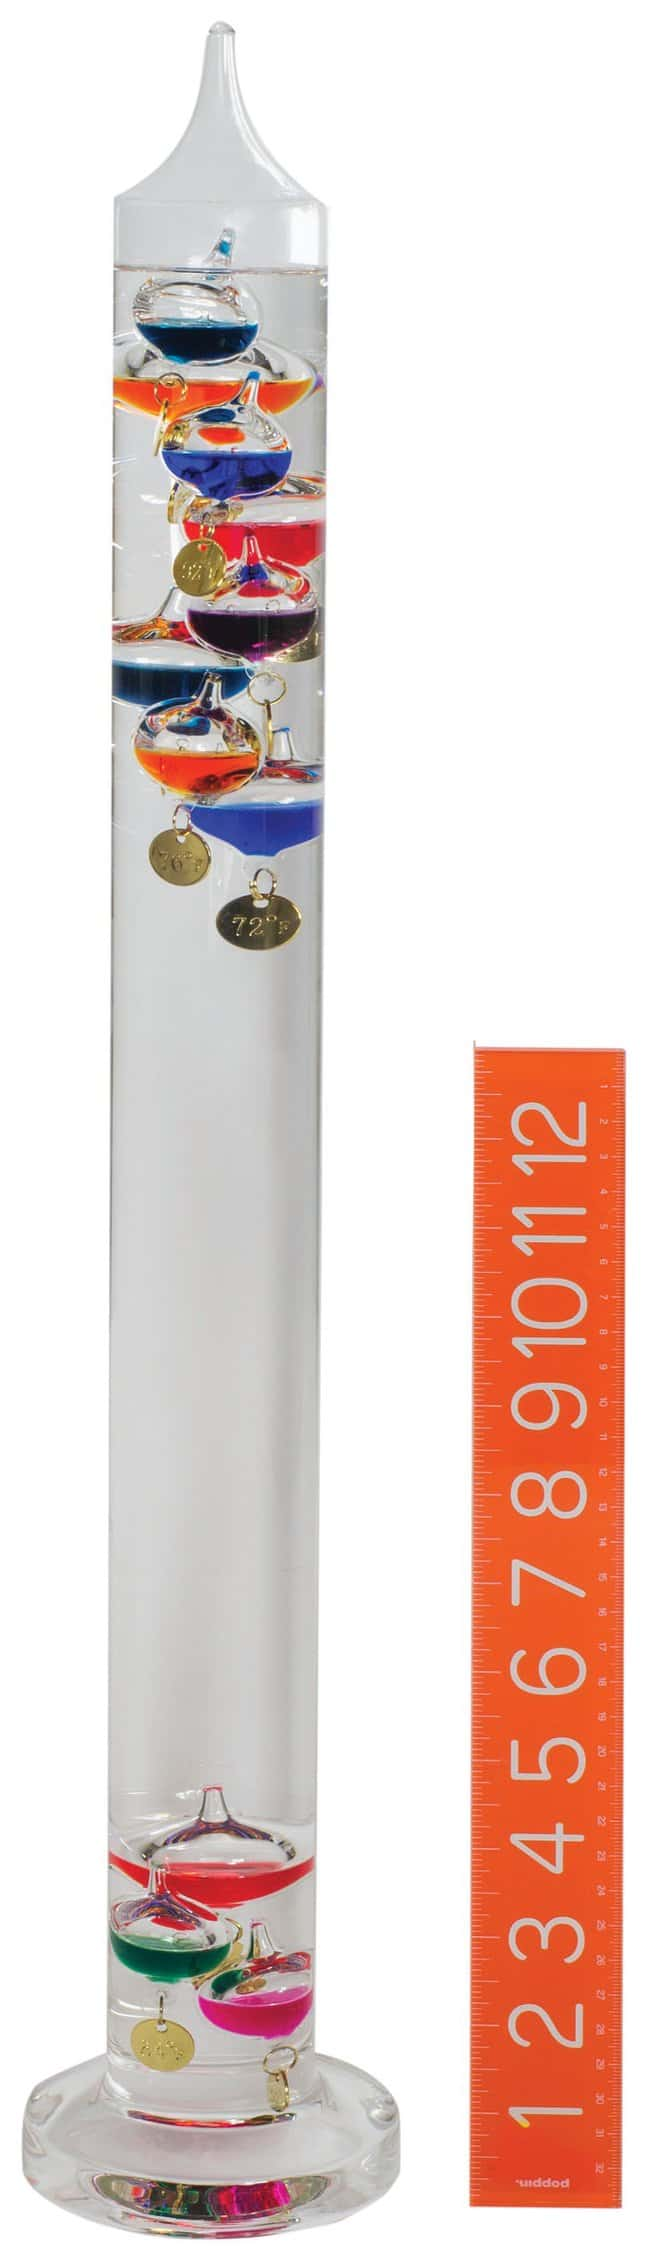 H-B Instrument Durac Galileo Thermometers:Thermometers, pH Meters, Timers